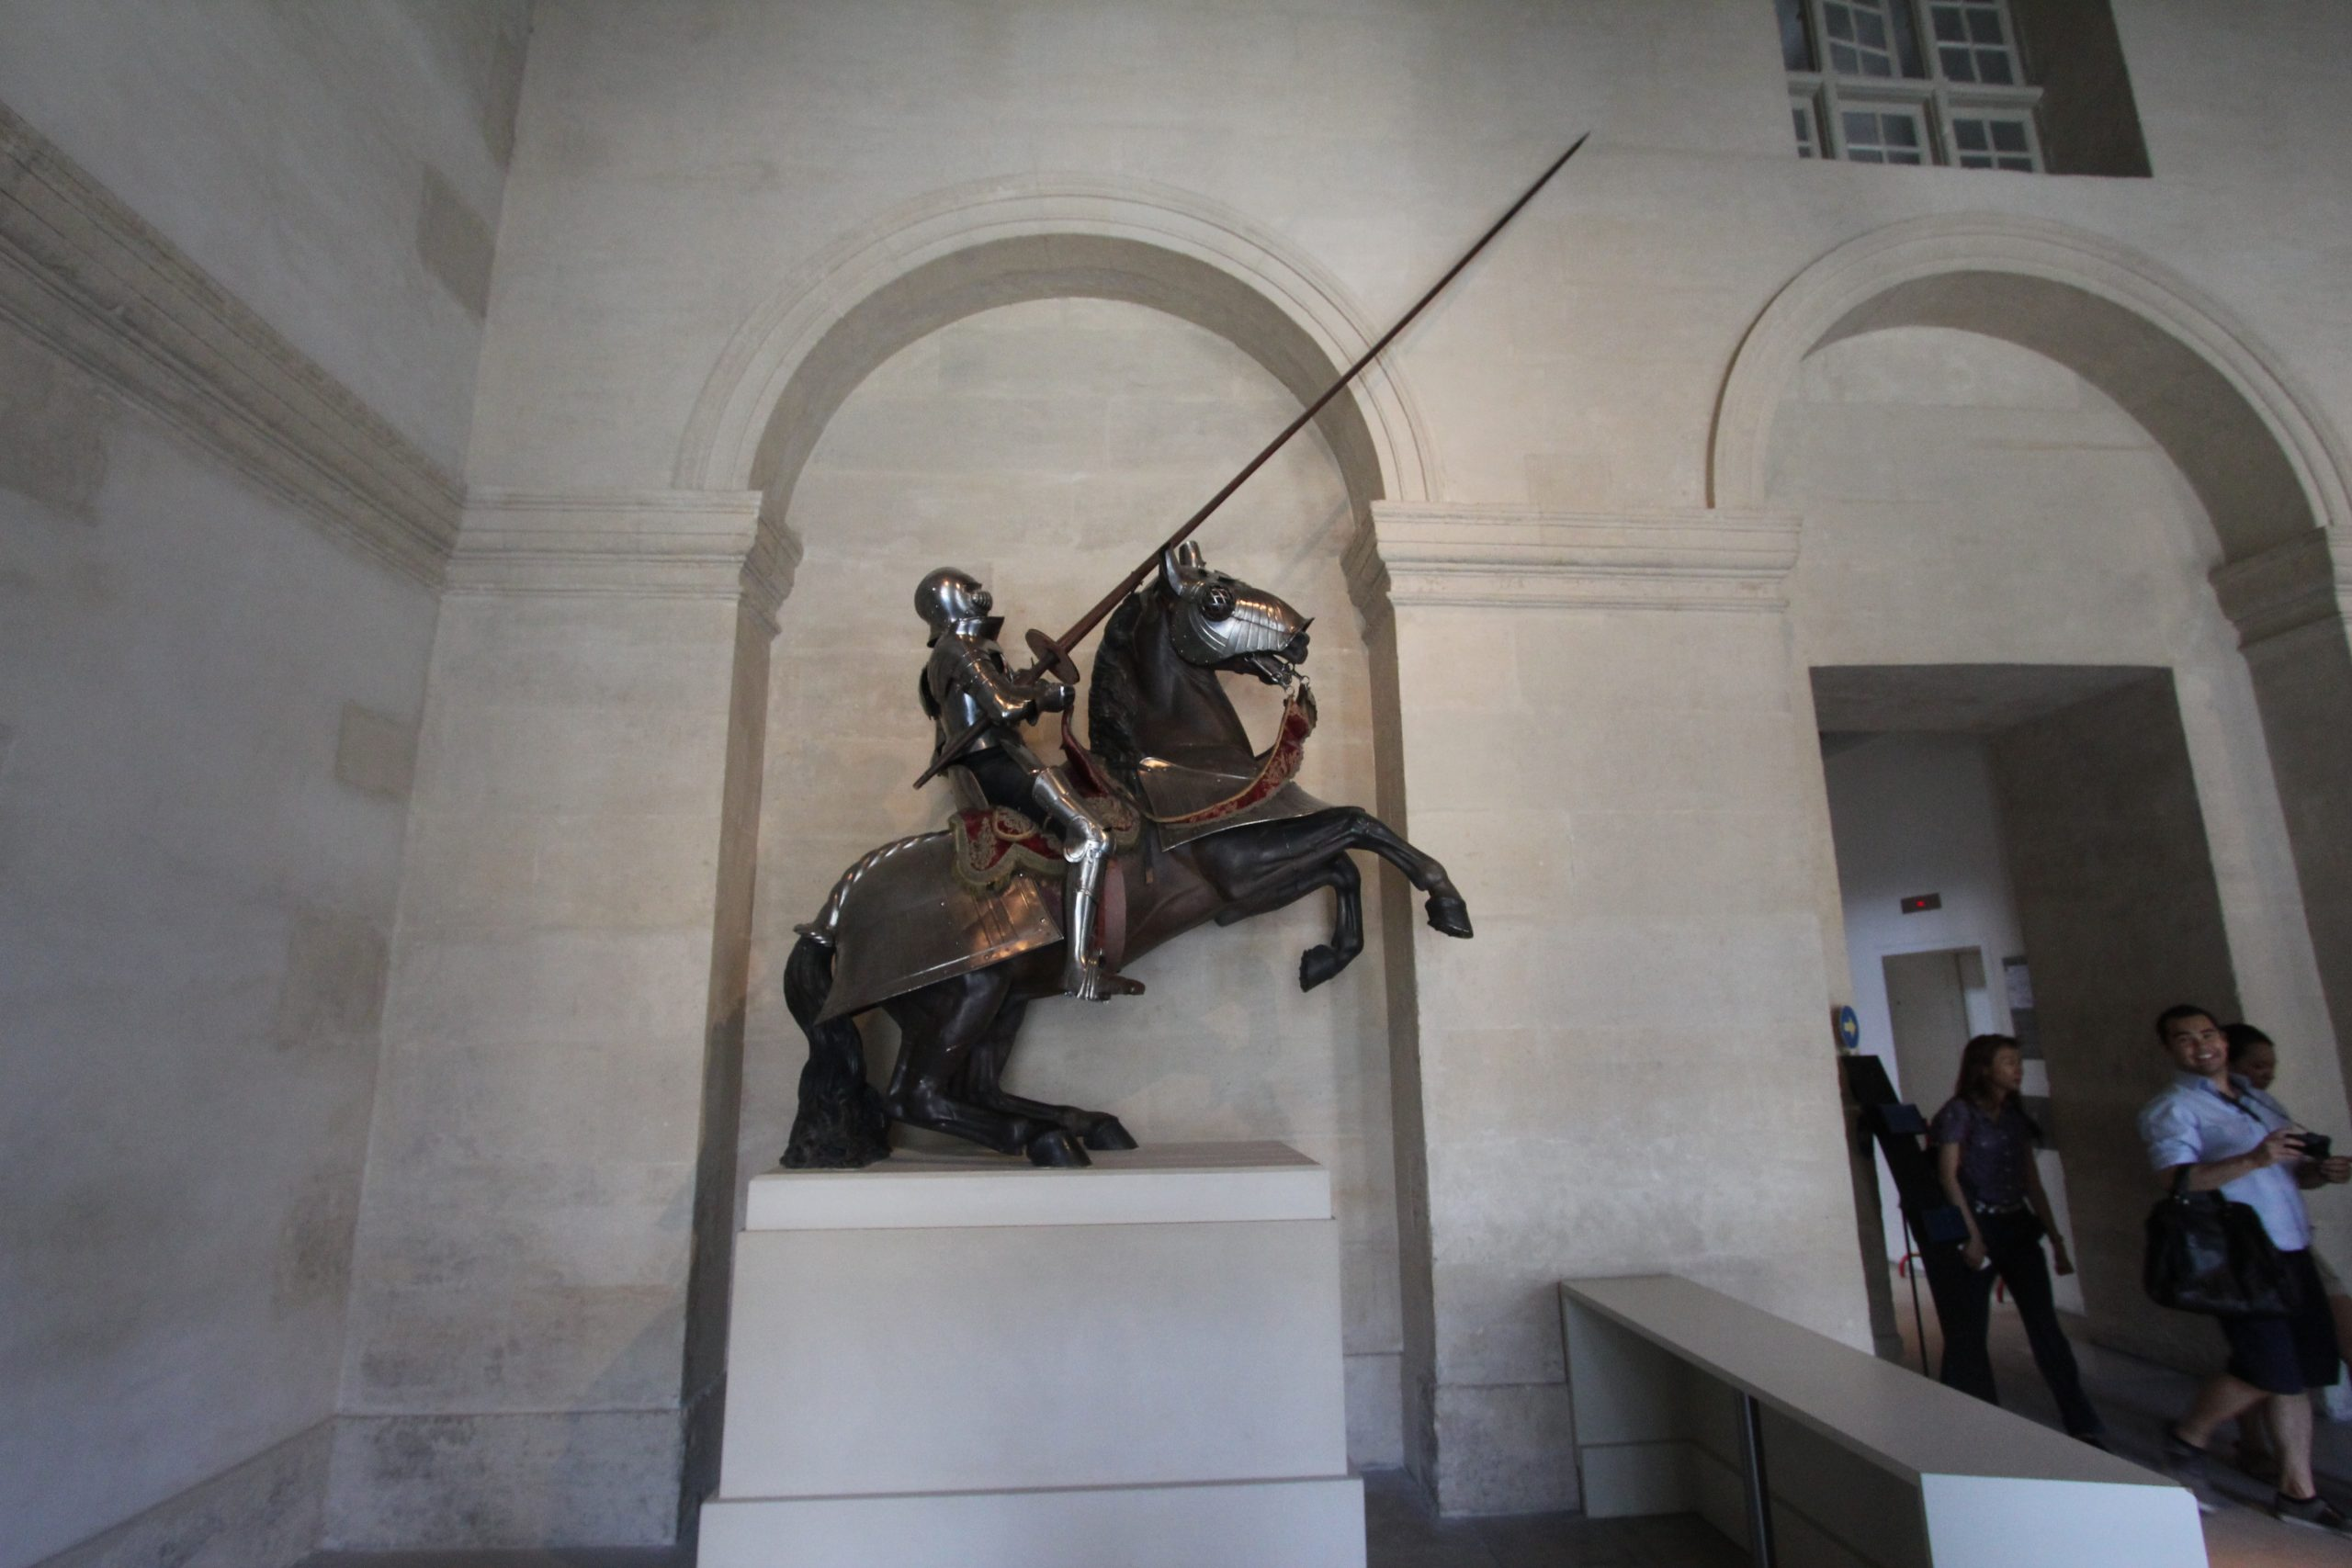 Agincourt: It was the battle where English longbow archers won against heavily-armoured French cavalry stuck in mud